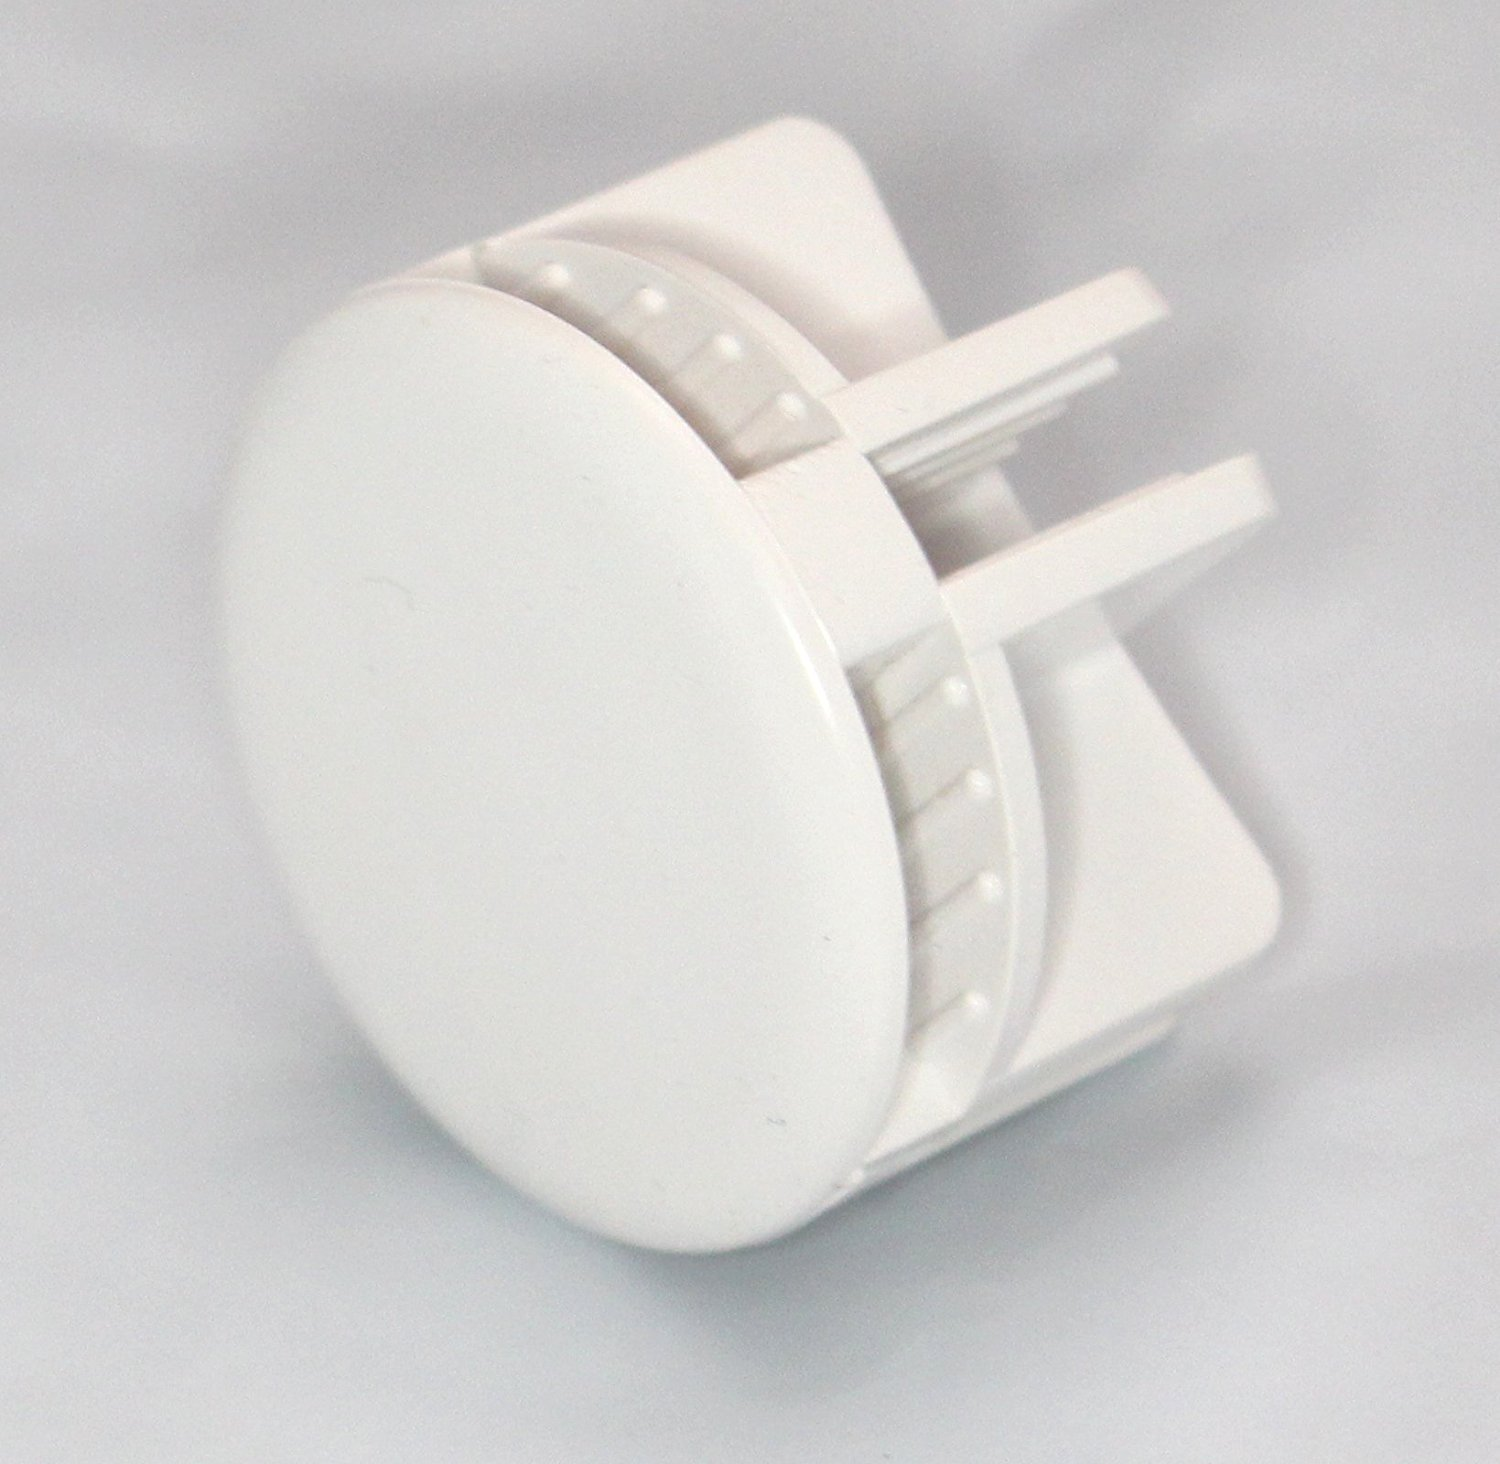 Amazon.com: JSP Manufacturing CURVED Wire Cube Plastic Connectors ...